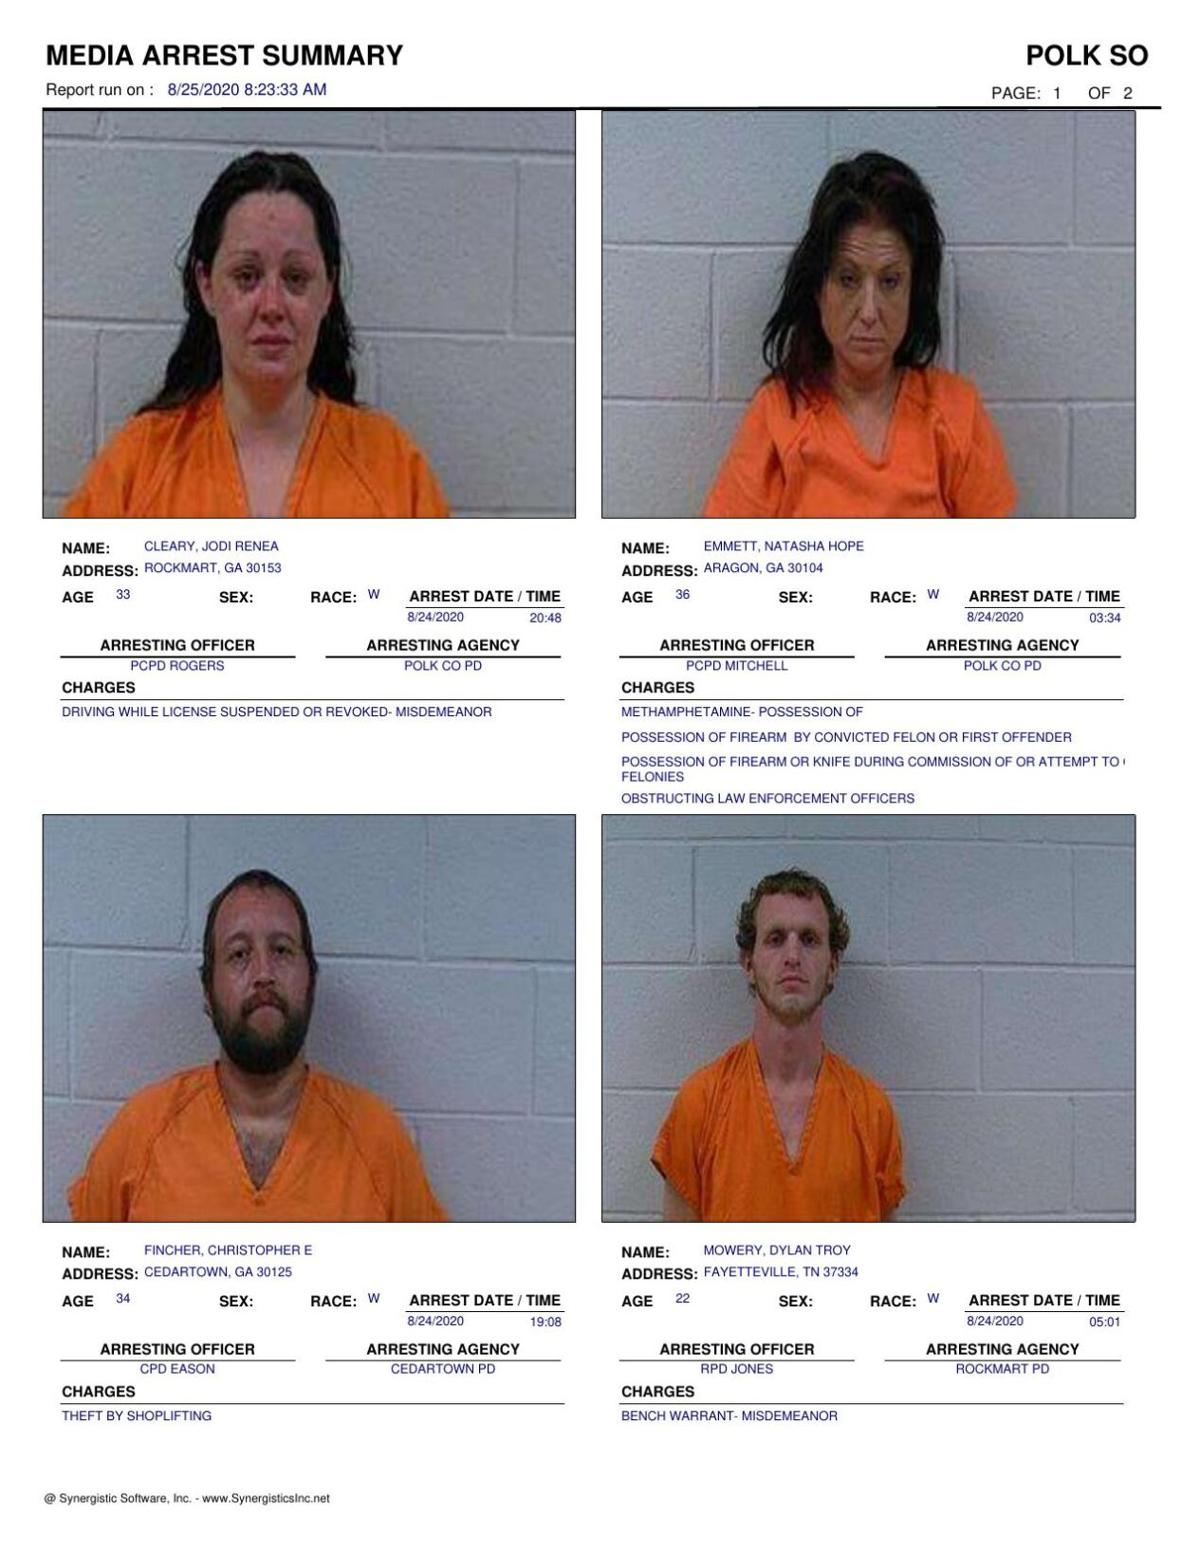 Polk County Jail Report for Tuesday, Aug. 25